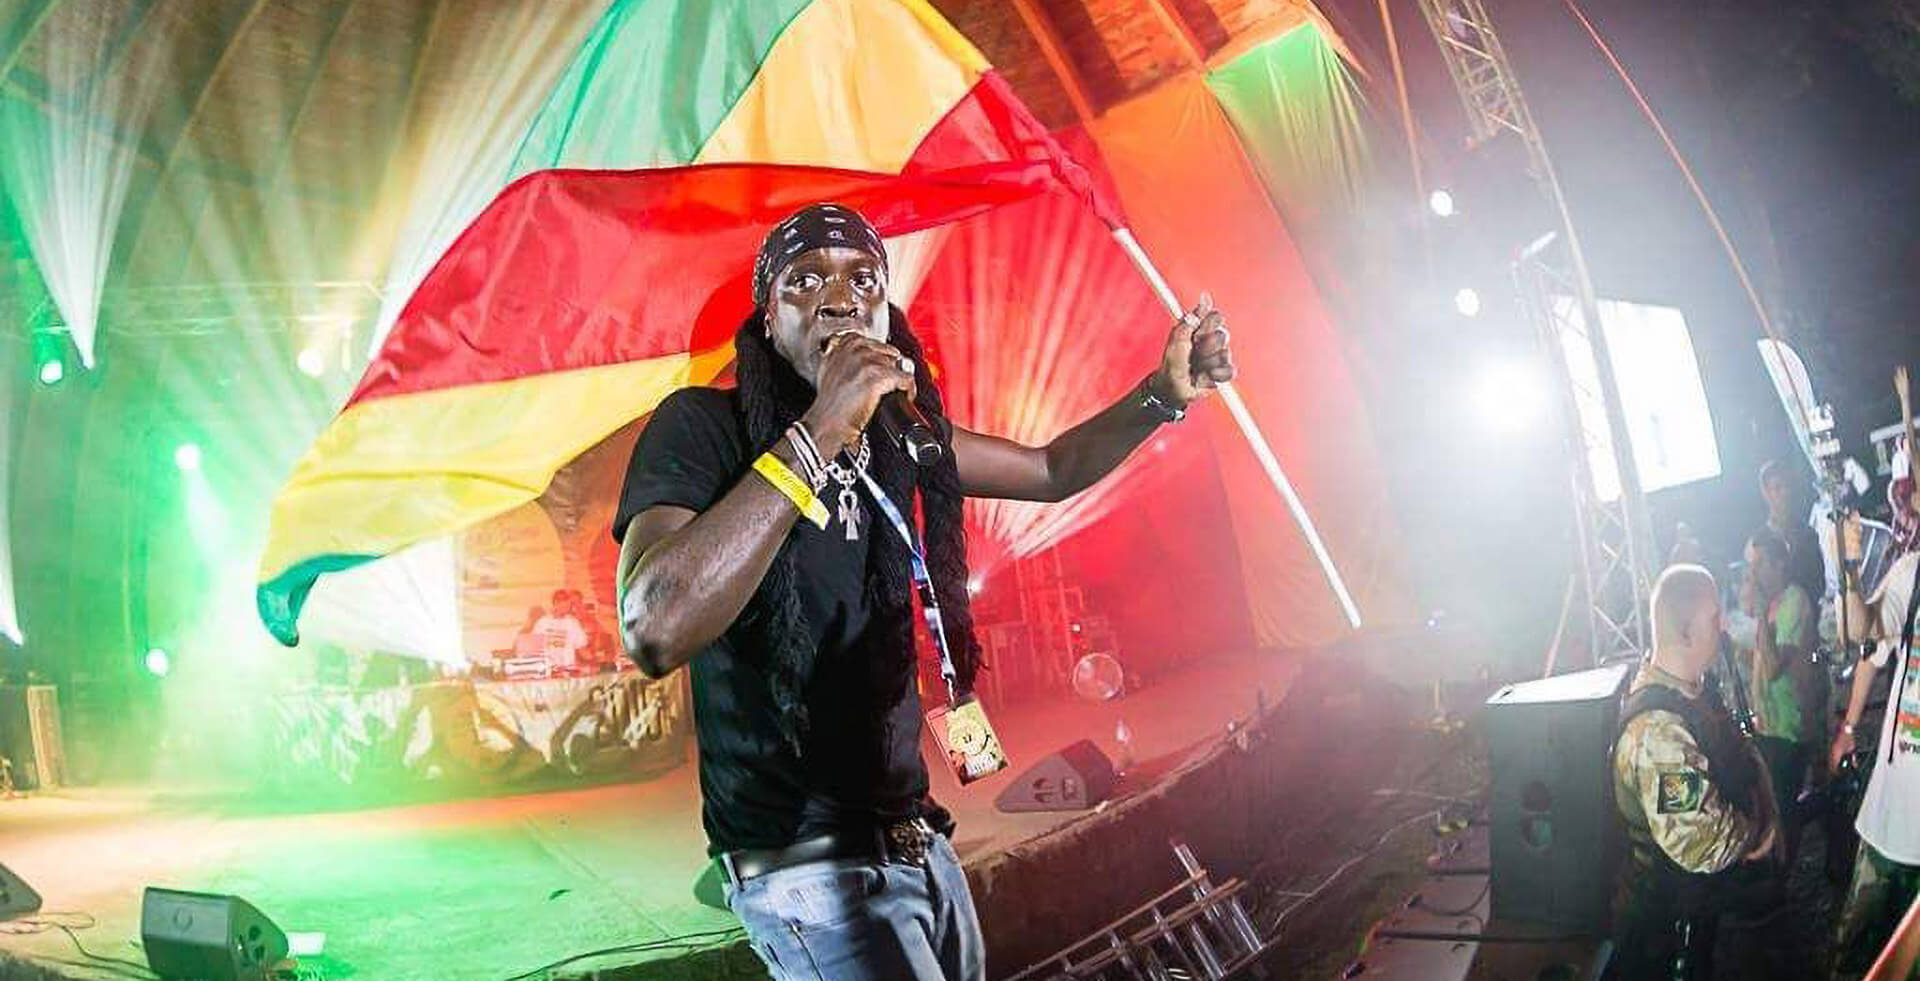 Blackout JA at Wilkswood Reggae Festival 2018